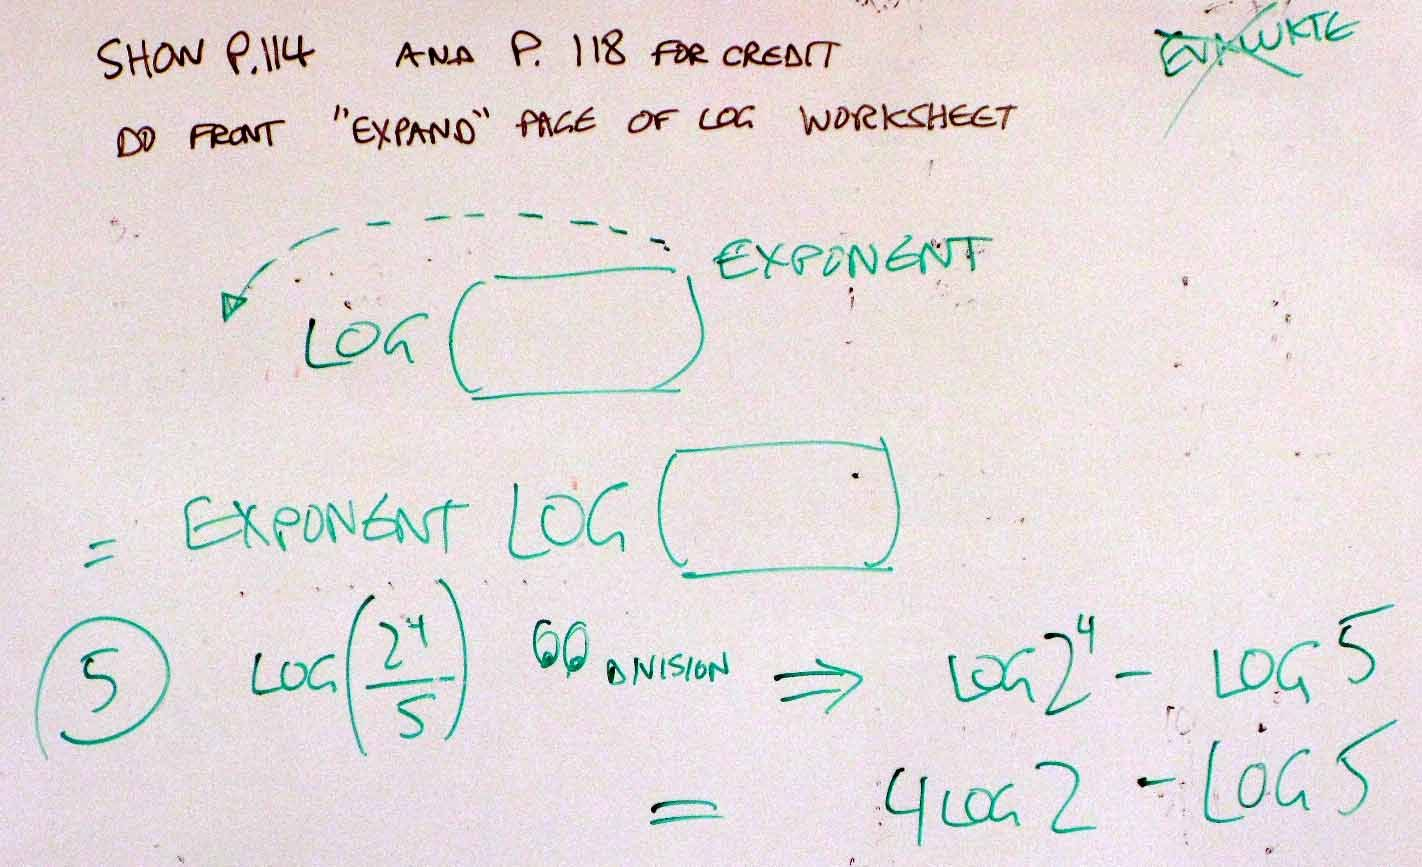 Expanding And Condensing Logarithms Worksheet